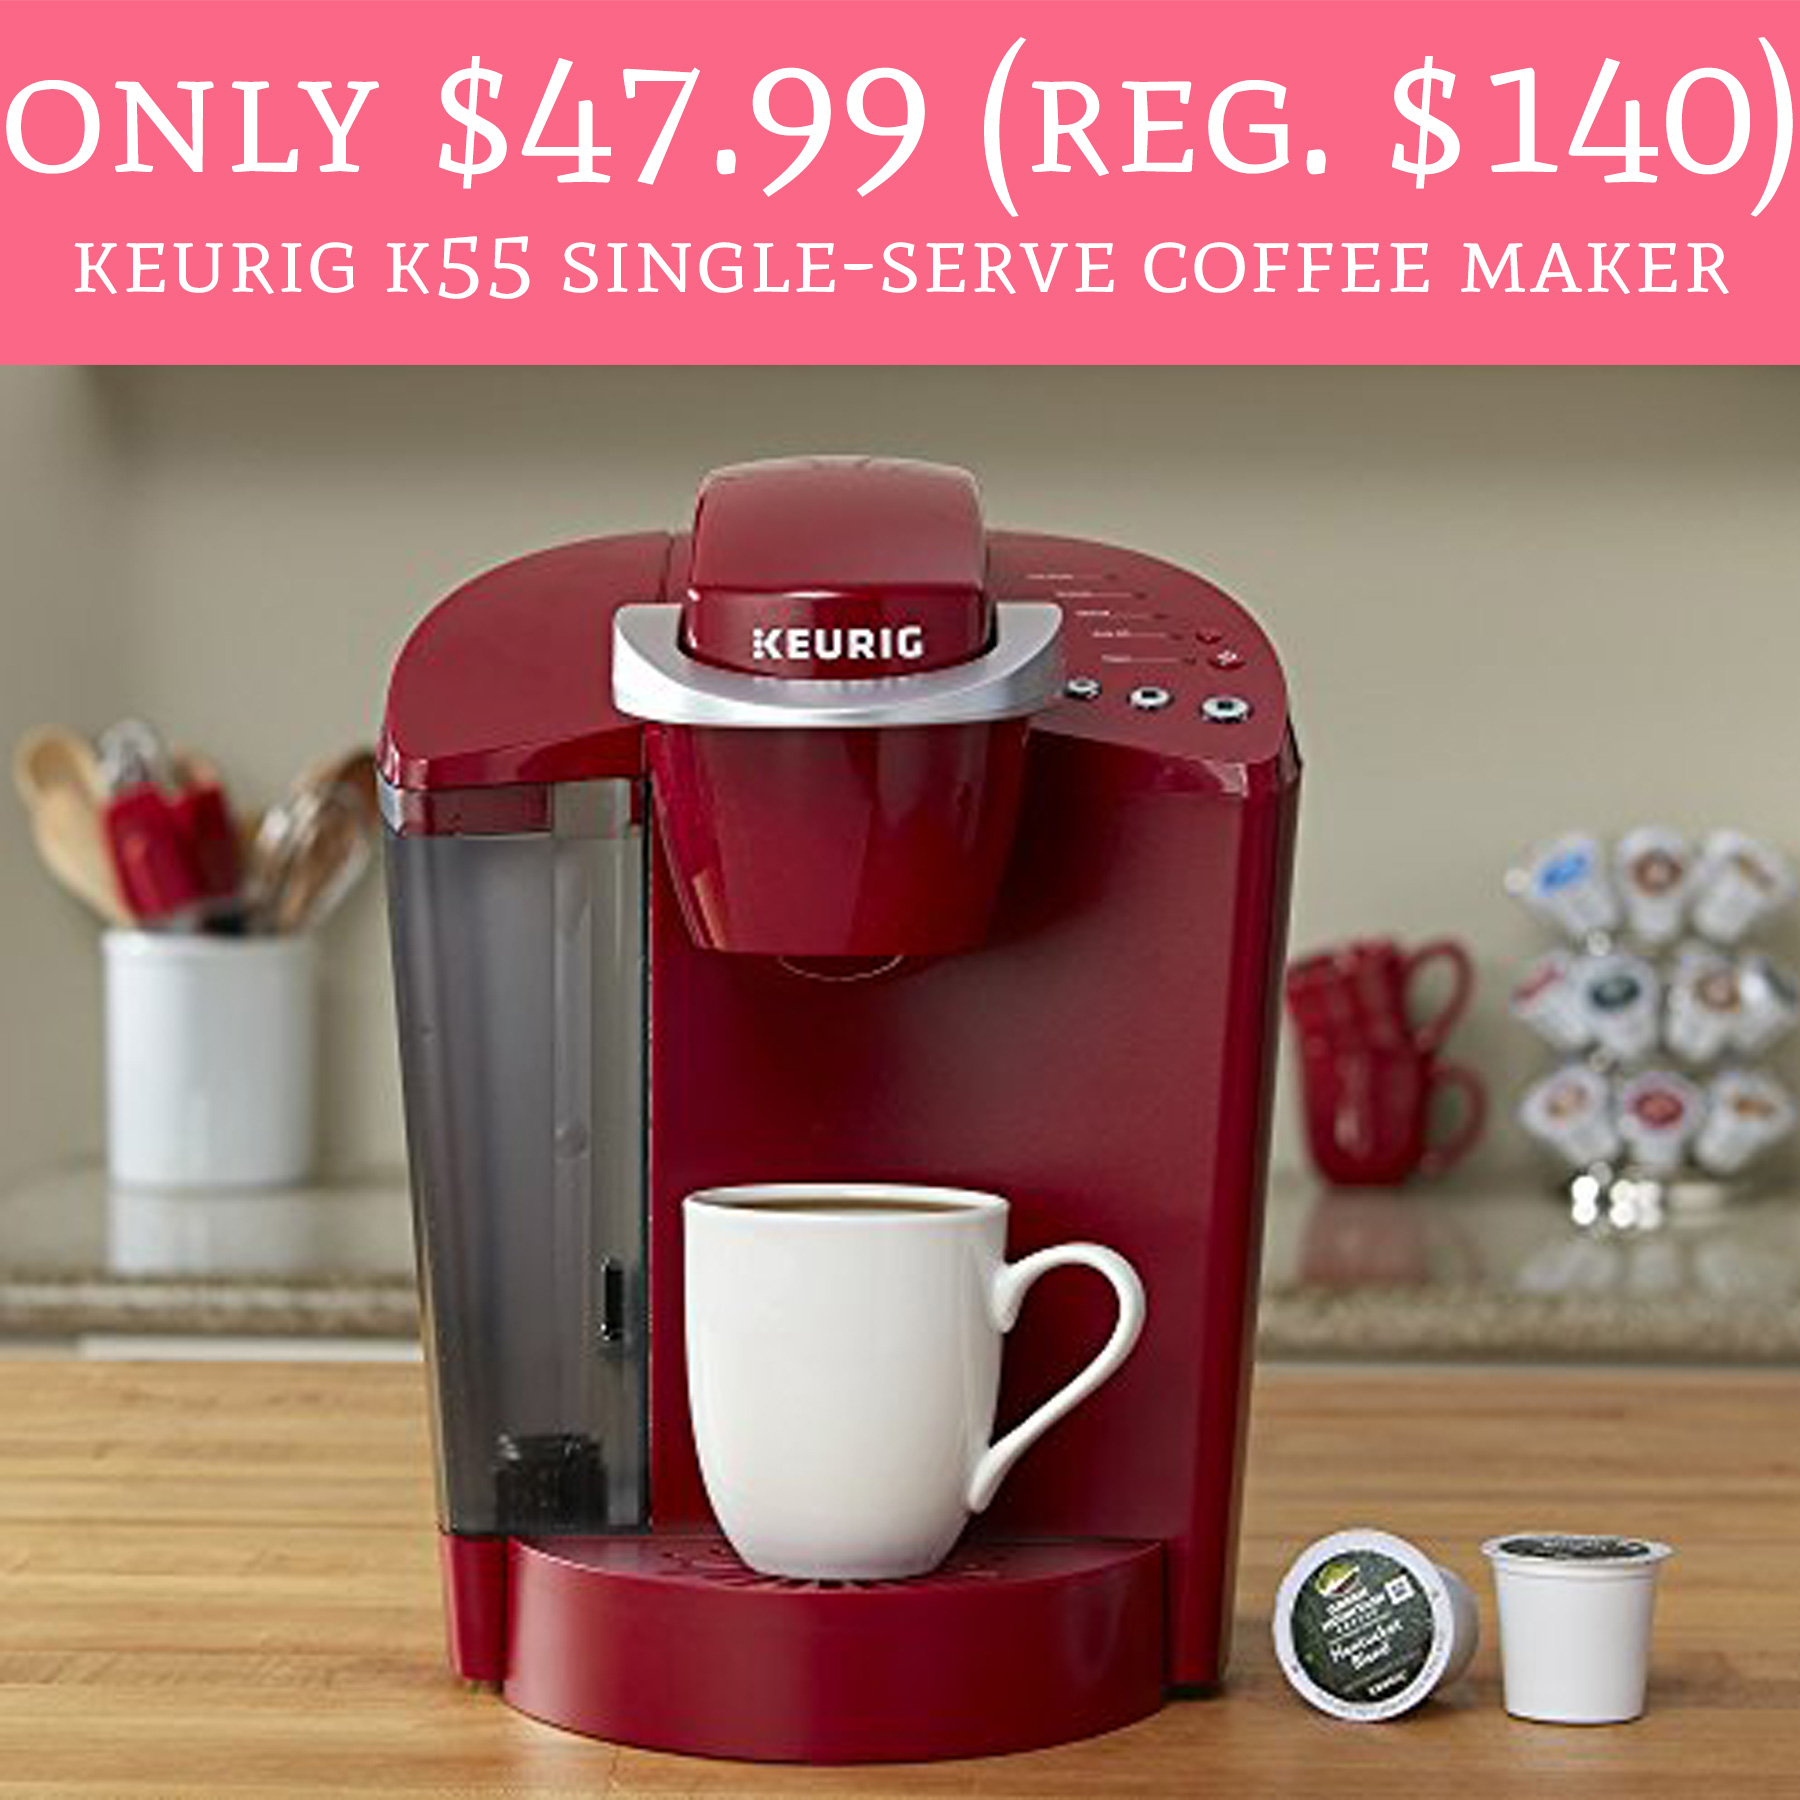 Single Serve Coffee Maker Deals : HOT! Only USD 47.99 (Regular USD 140) Keurig K55 Single-Serve Coffee Maker - Deal Hunting Babe